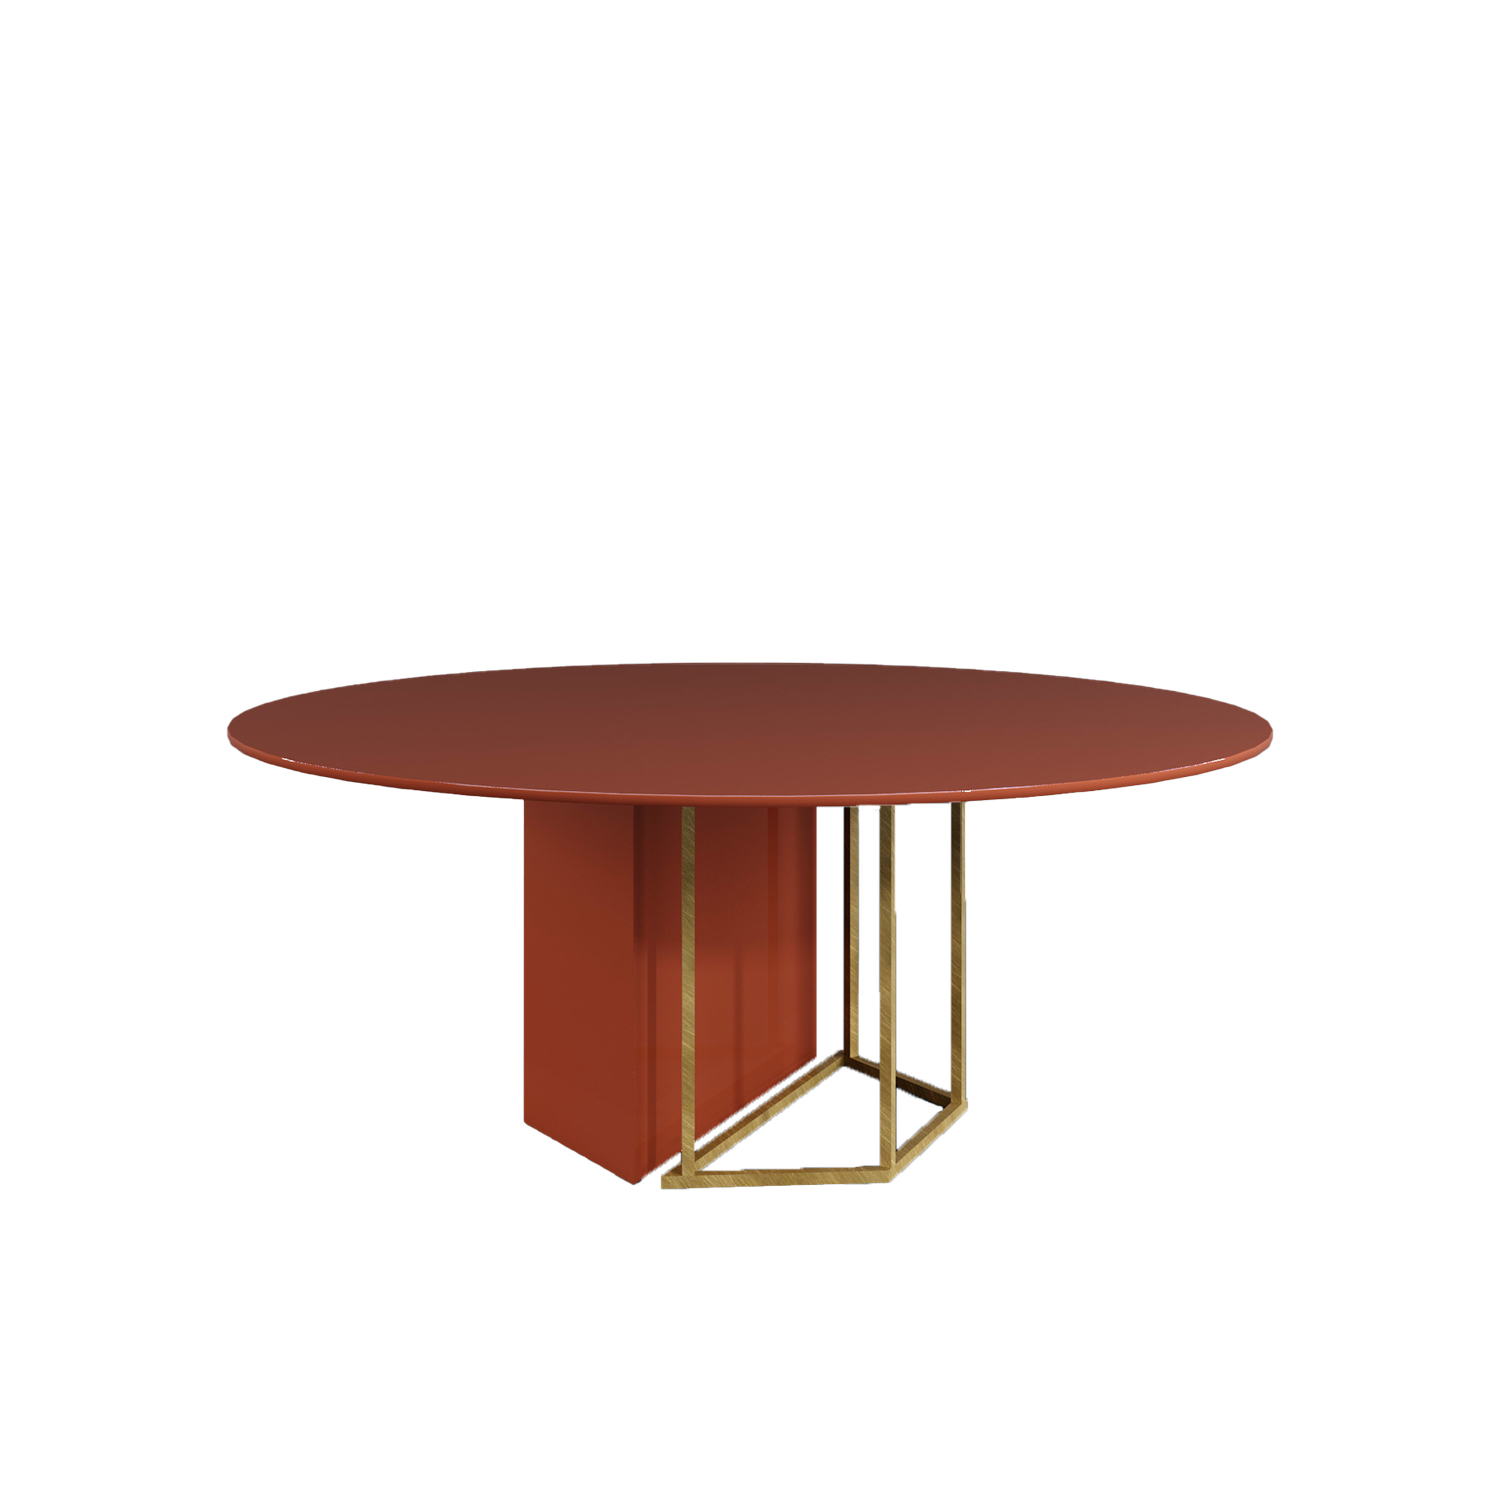 Plinto Round Dining Table - Dining tables with metal base with plinth. Tops in different models and dimensions. Finishes for metal base - black varnishes - bronzed brass Finishes for plinth - wood veneer - matt or glossy lacquer - marble Finishes for tops - wood veneer - matt or glossy lacquer - marble | Matter of Stuff